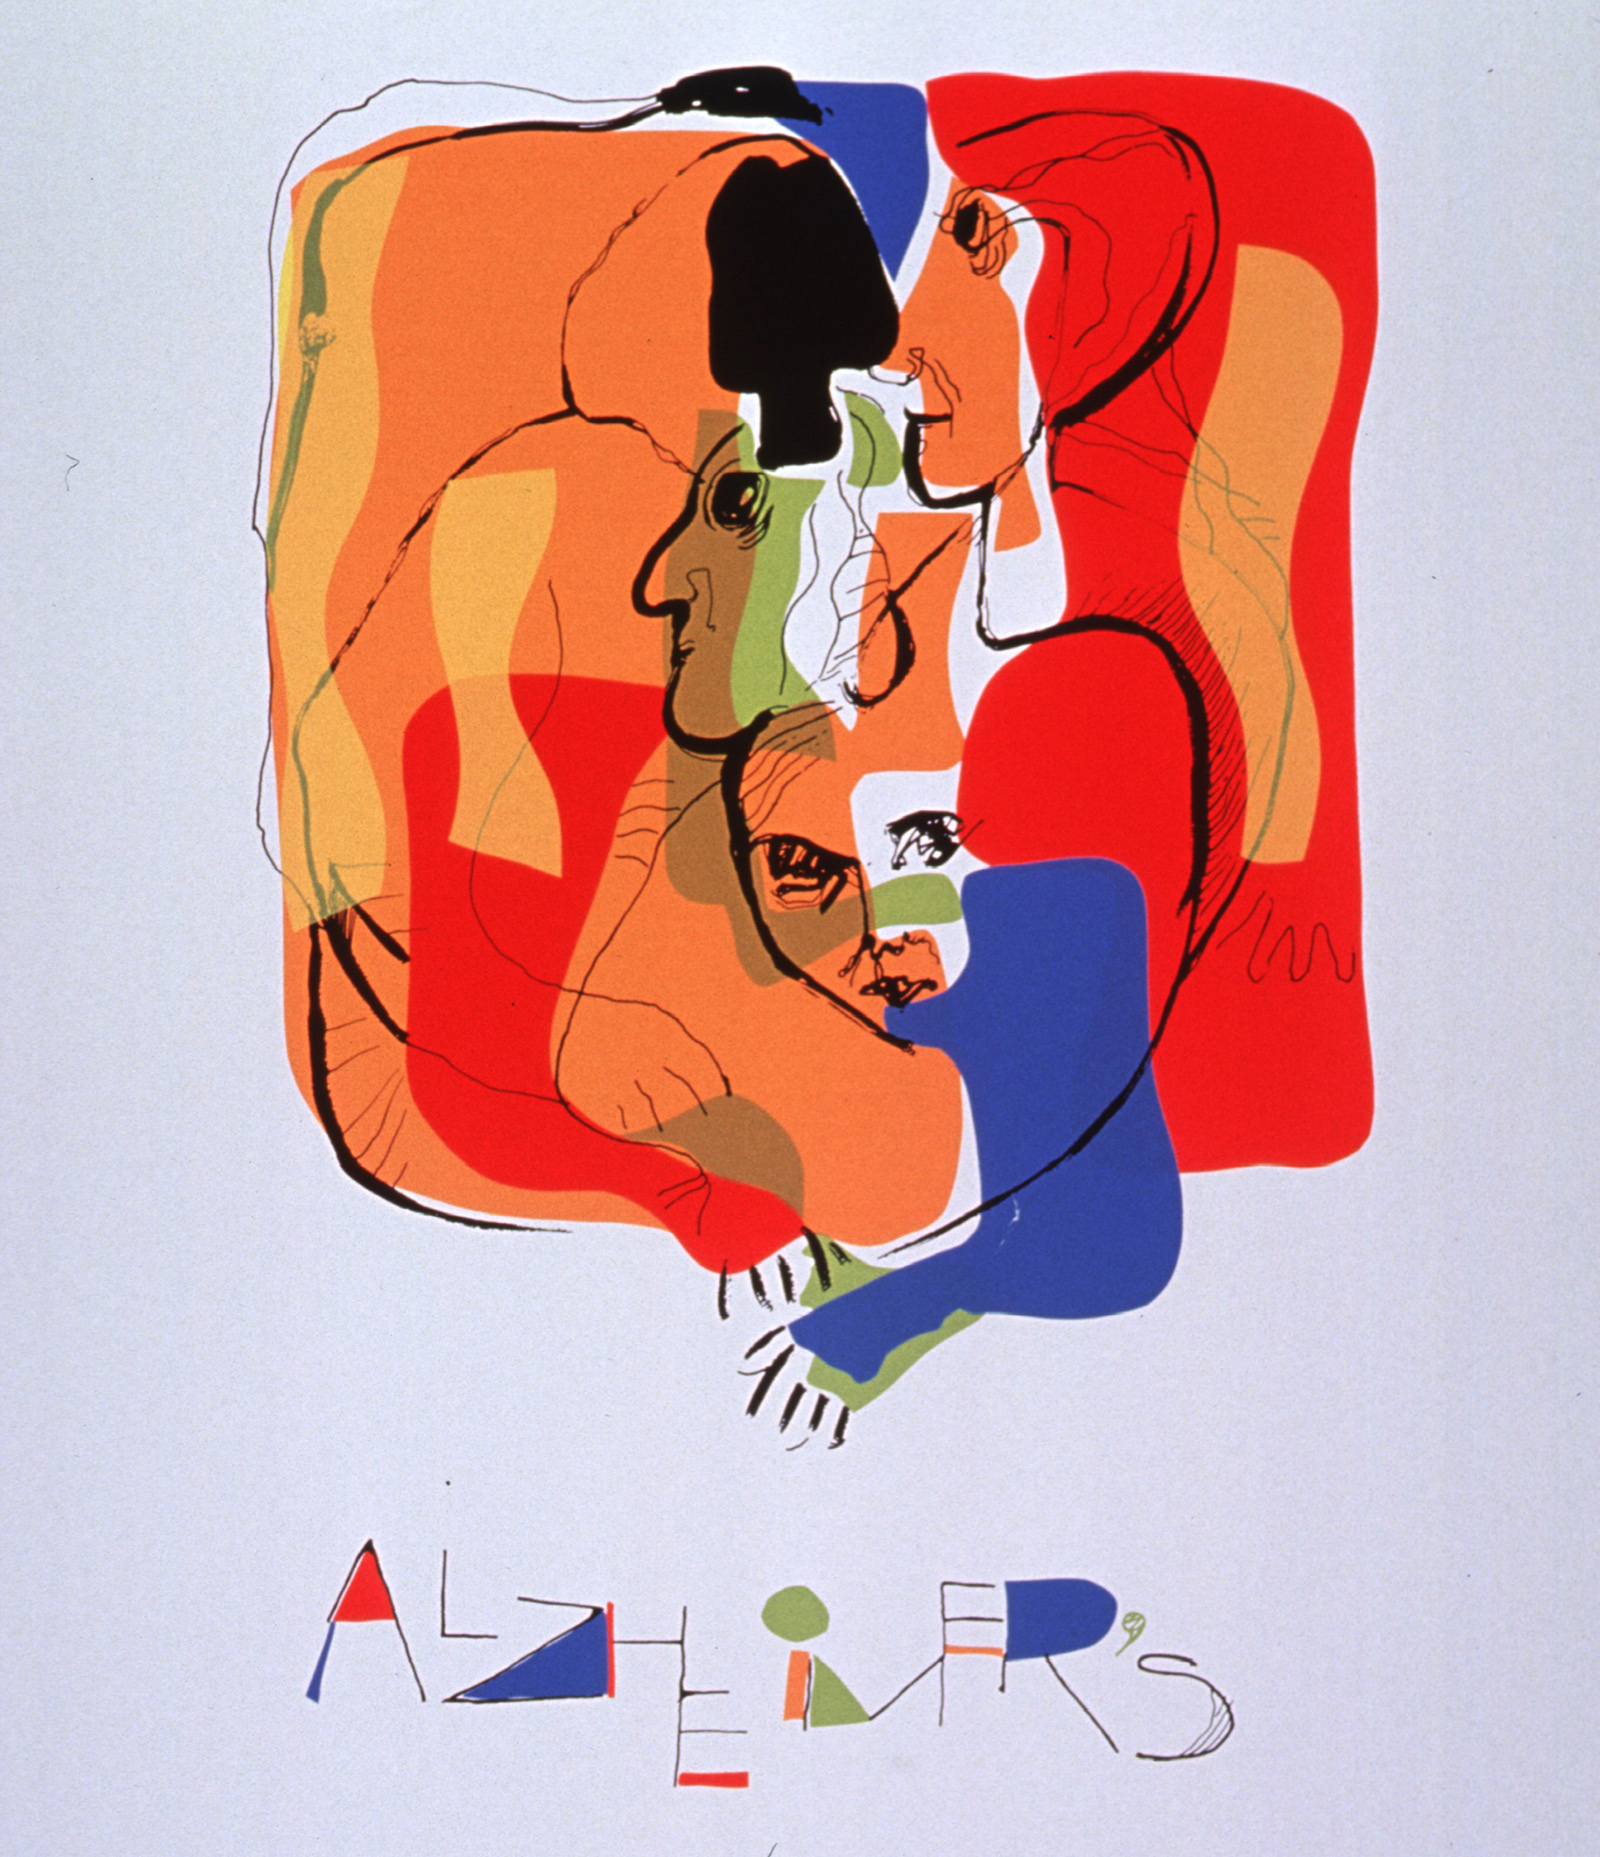 A brightly colored abstract including various faces and arms mingled together with the word ALZHEIMER'S in colorful abstract at the bottom.